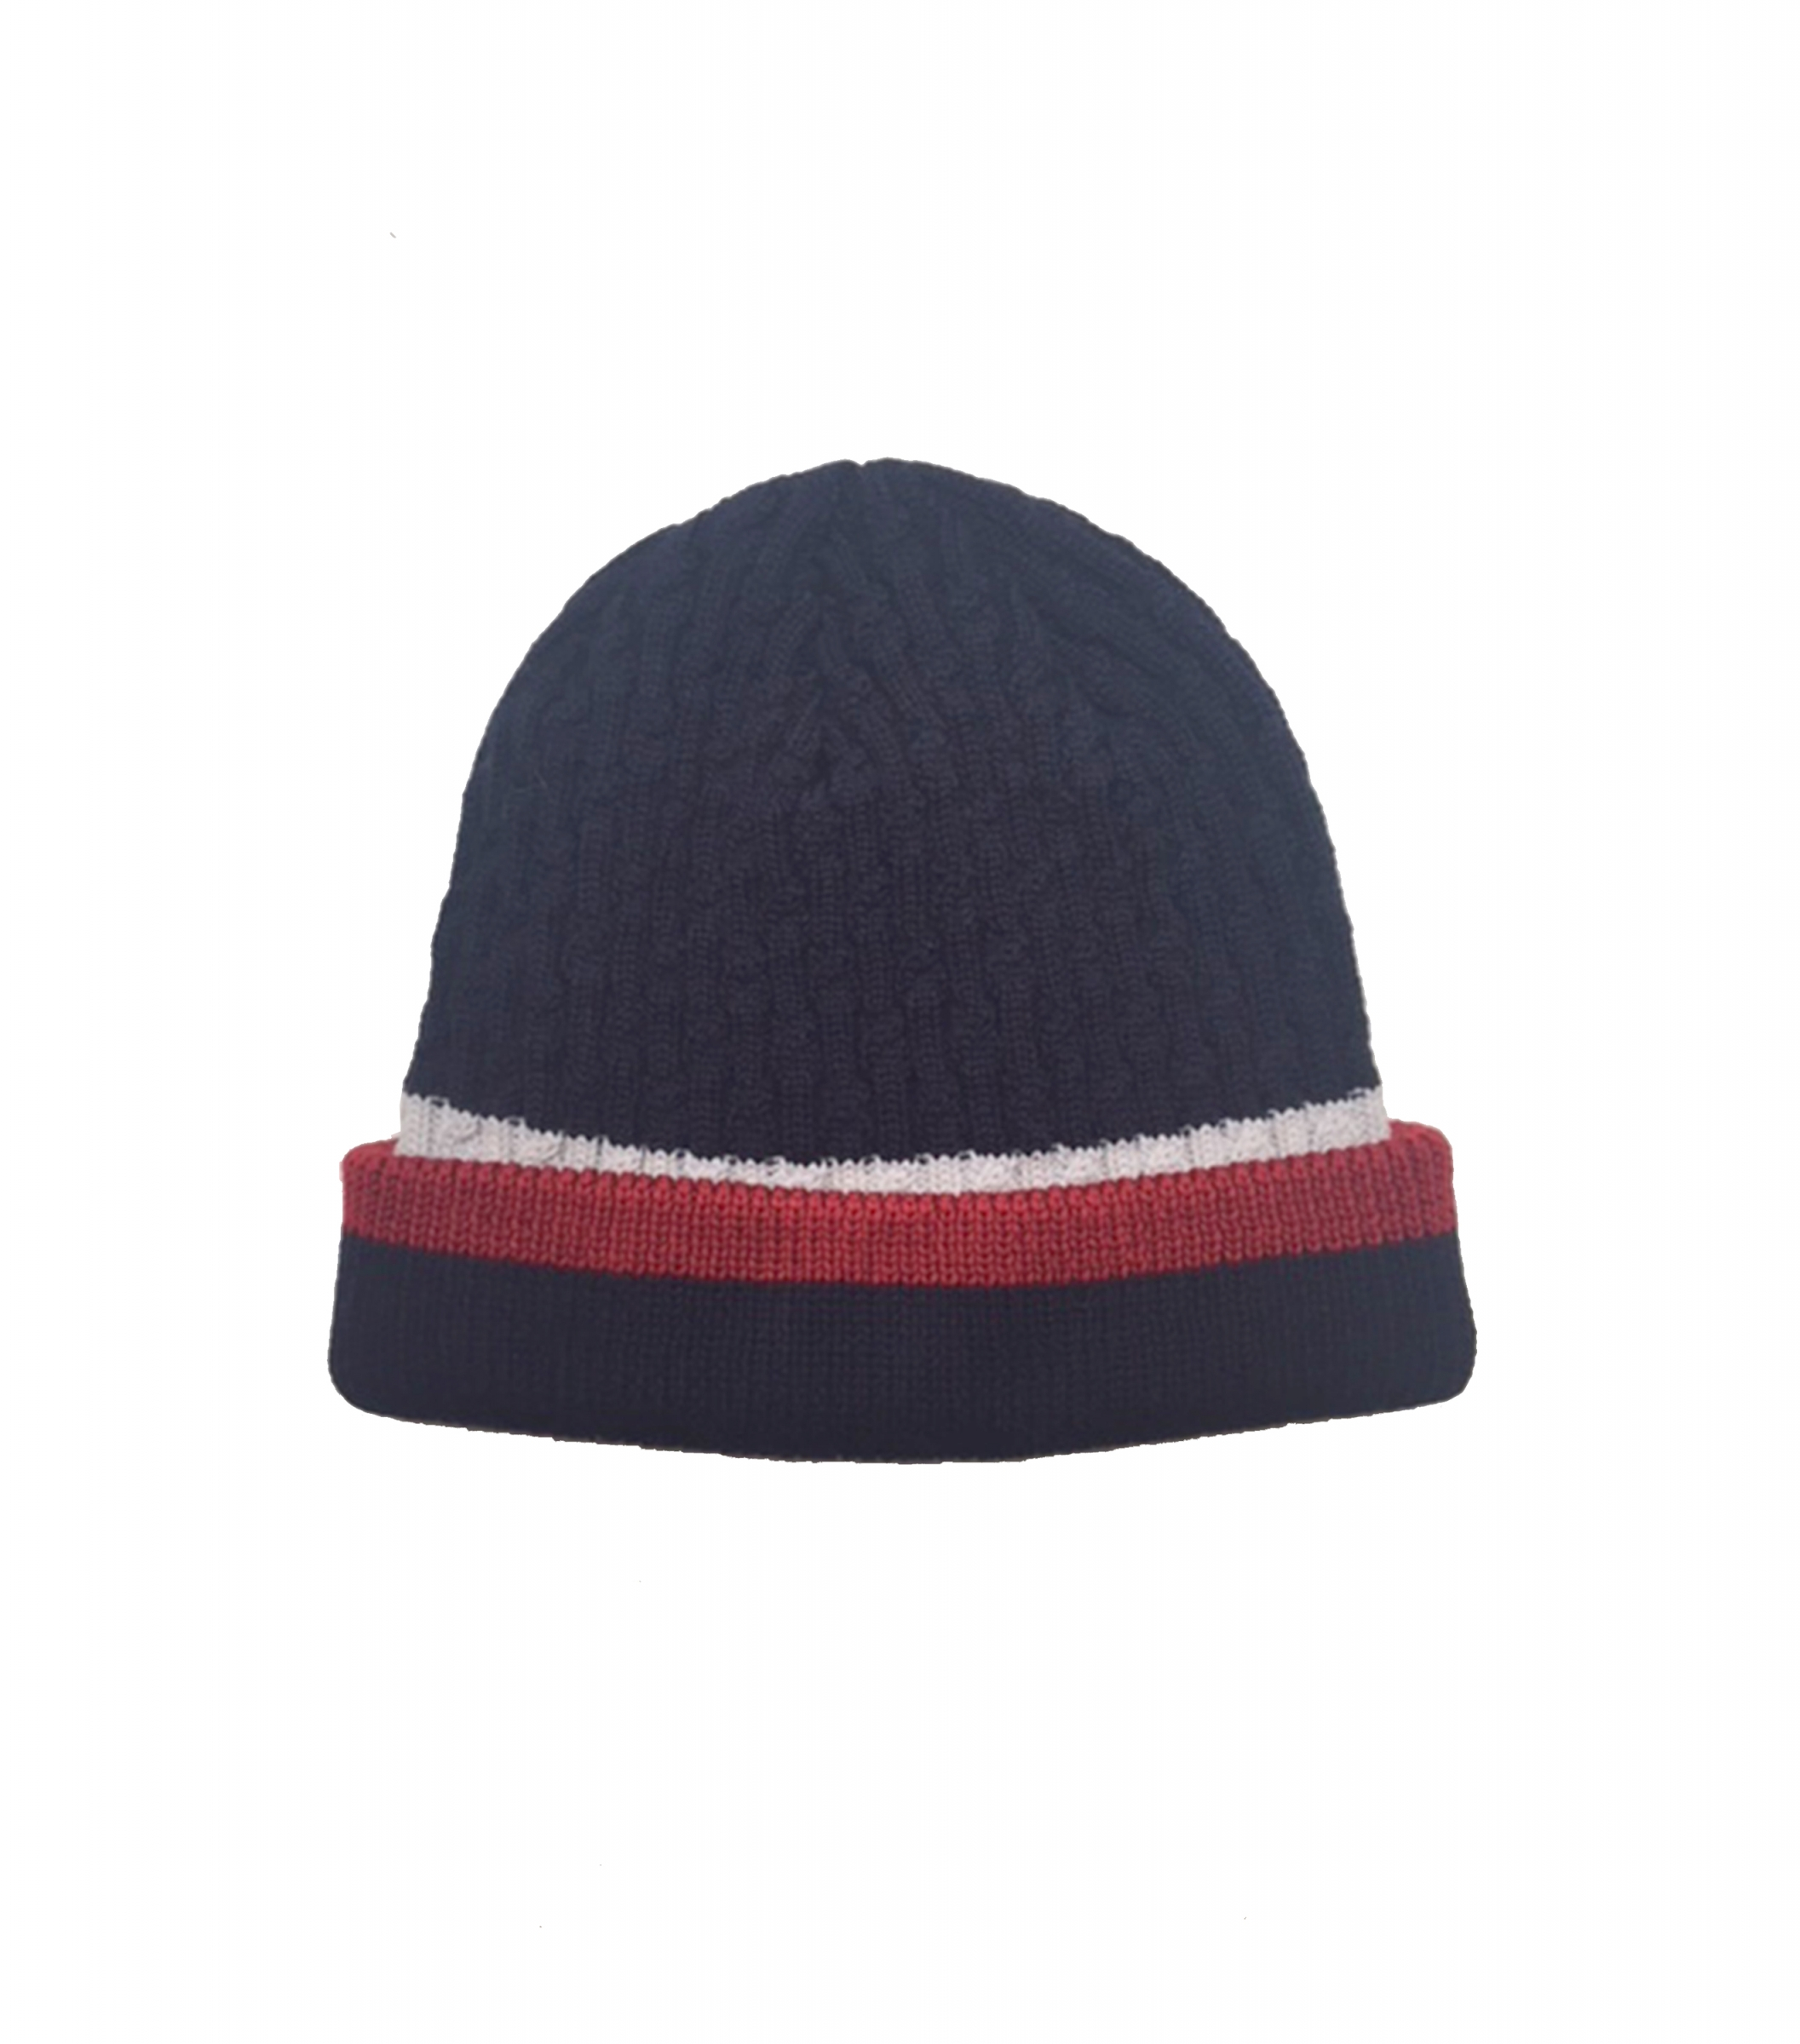 HAT FRAME - Navy